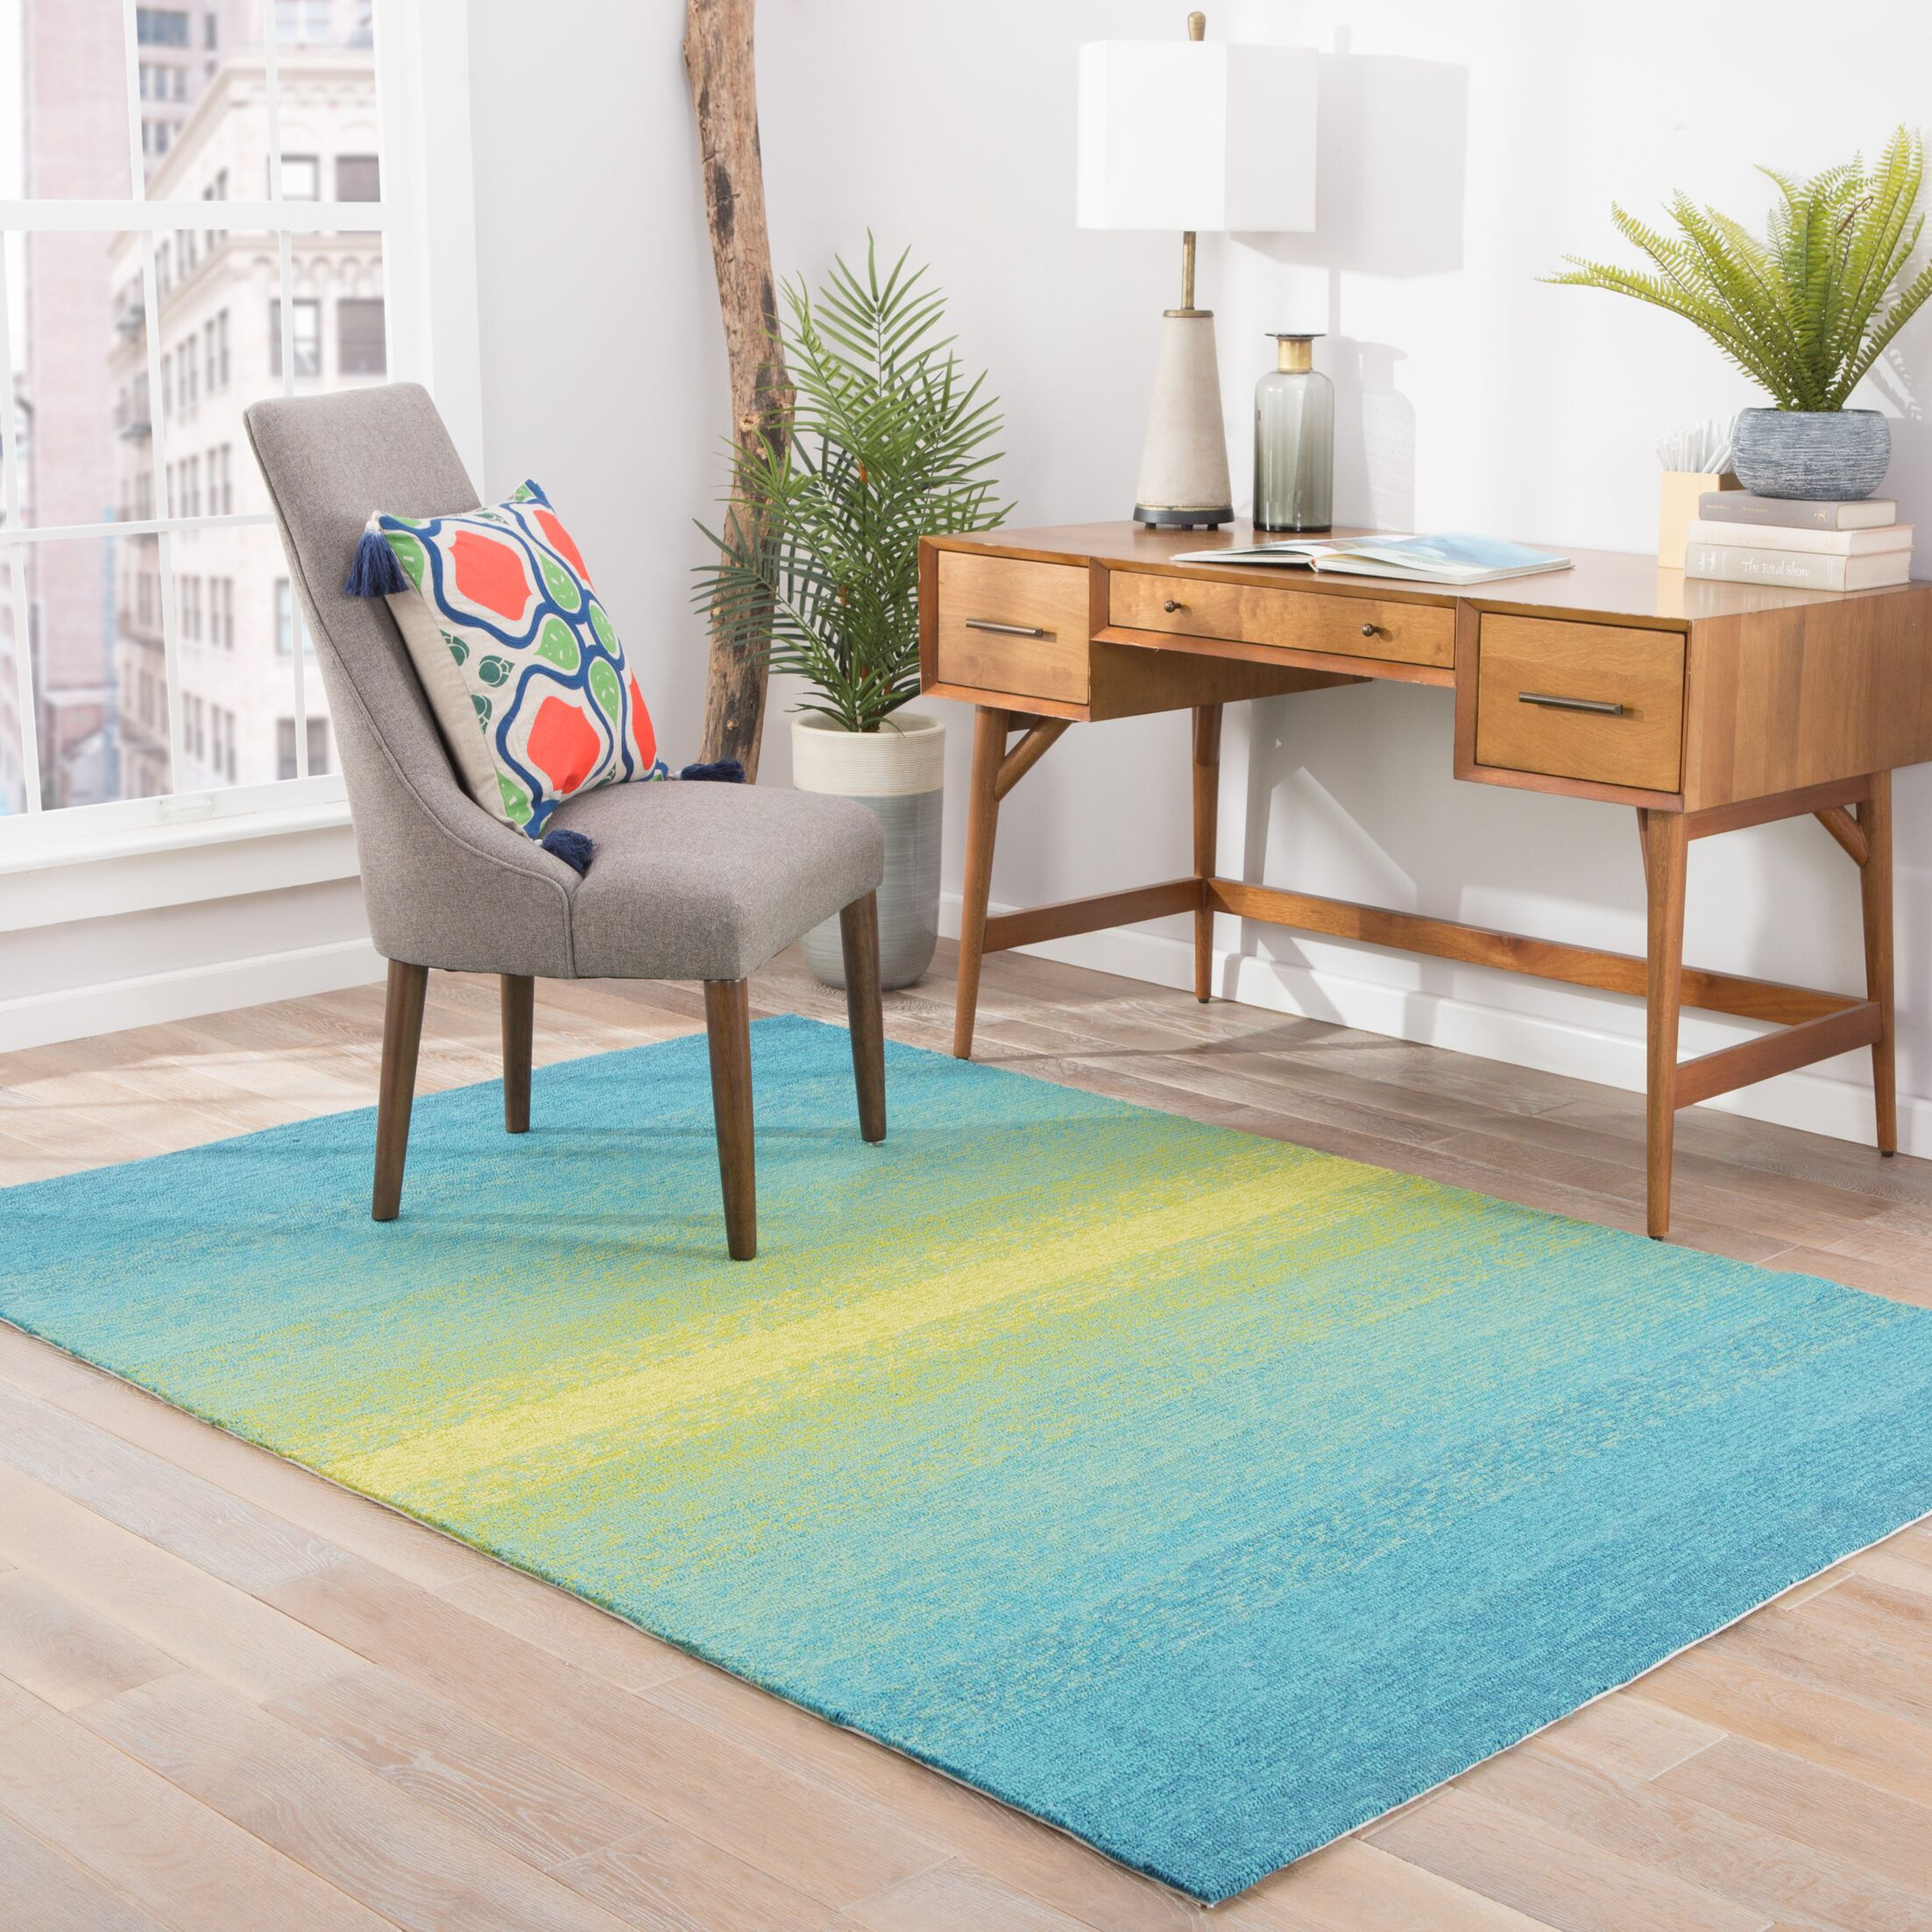 Calanthe Blue/Green Indoor/Outdoor Area Rug Rug Size: Rectangle 7'6